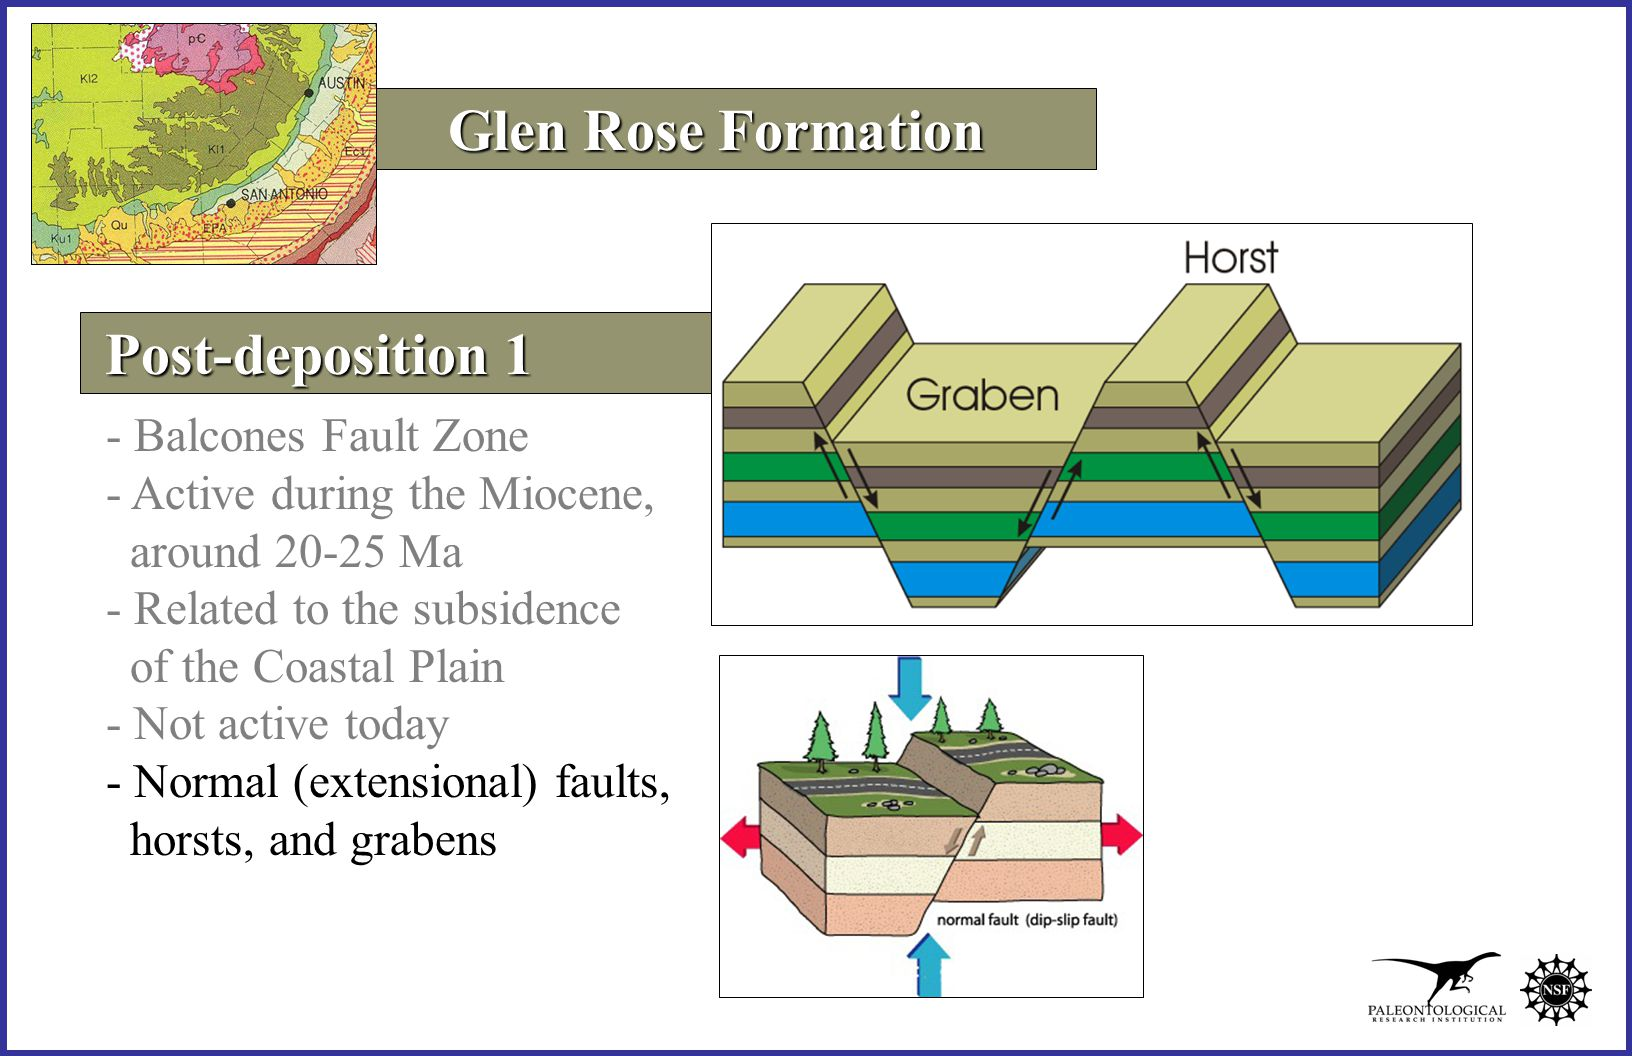 Glen Rose Formation - Balcones Fault Zone - Active during the Miocene, around 20-25 Ma - Related to the subsidence of the Coastal Plain - Not active today - Normal (extensional) faults, horsts, and grabens Post-deposition 1 Post-deposition 1